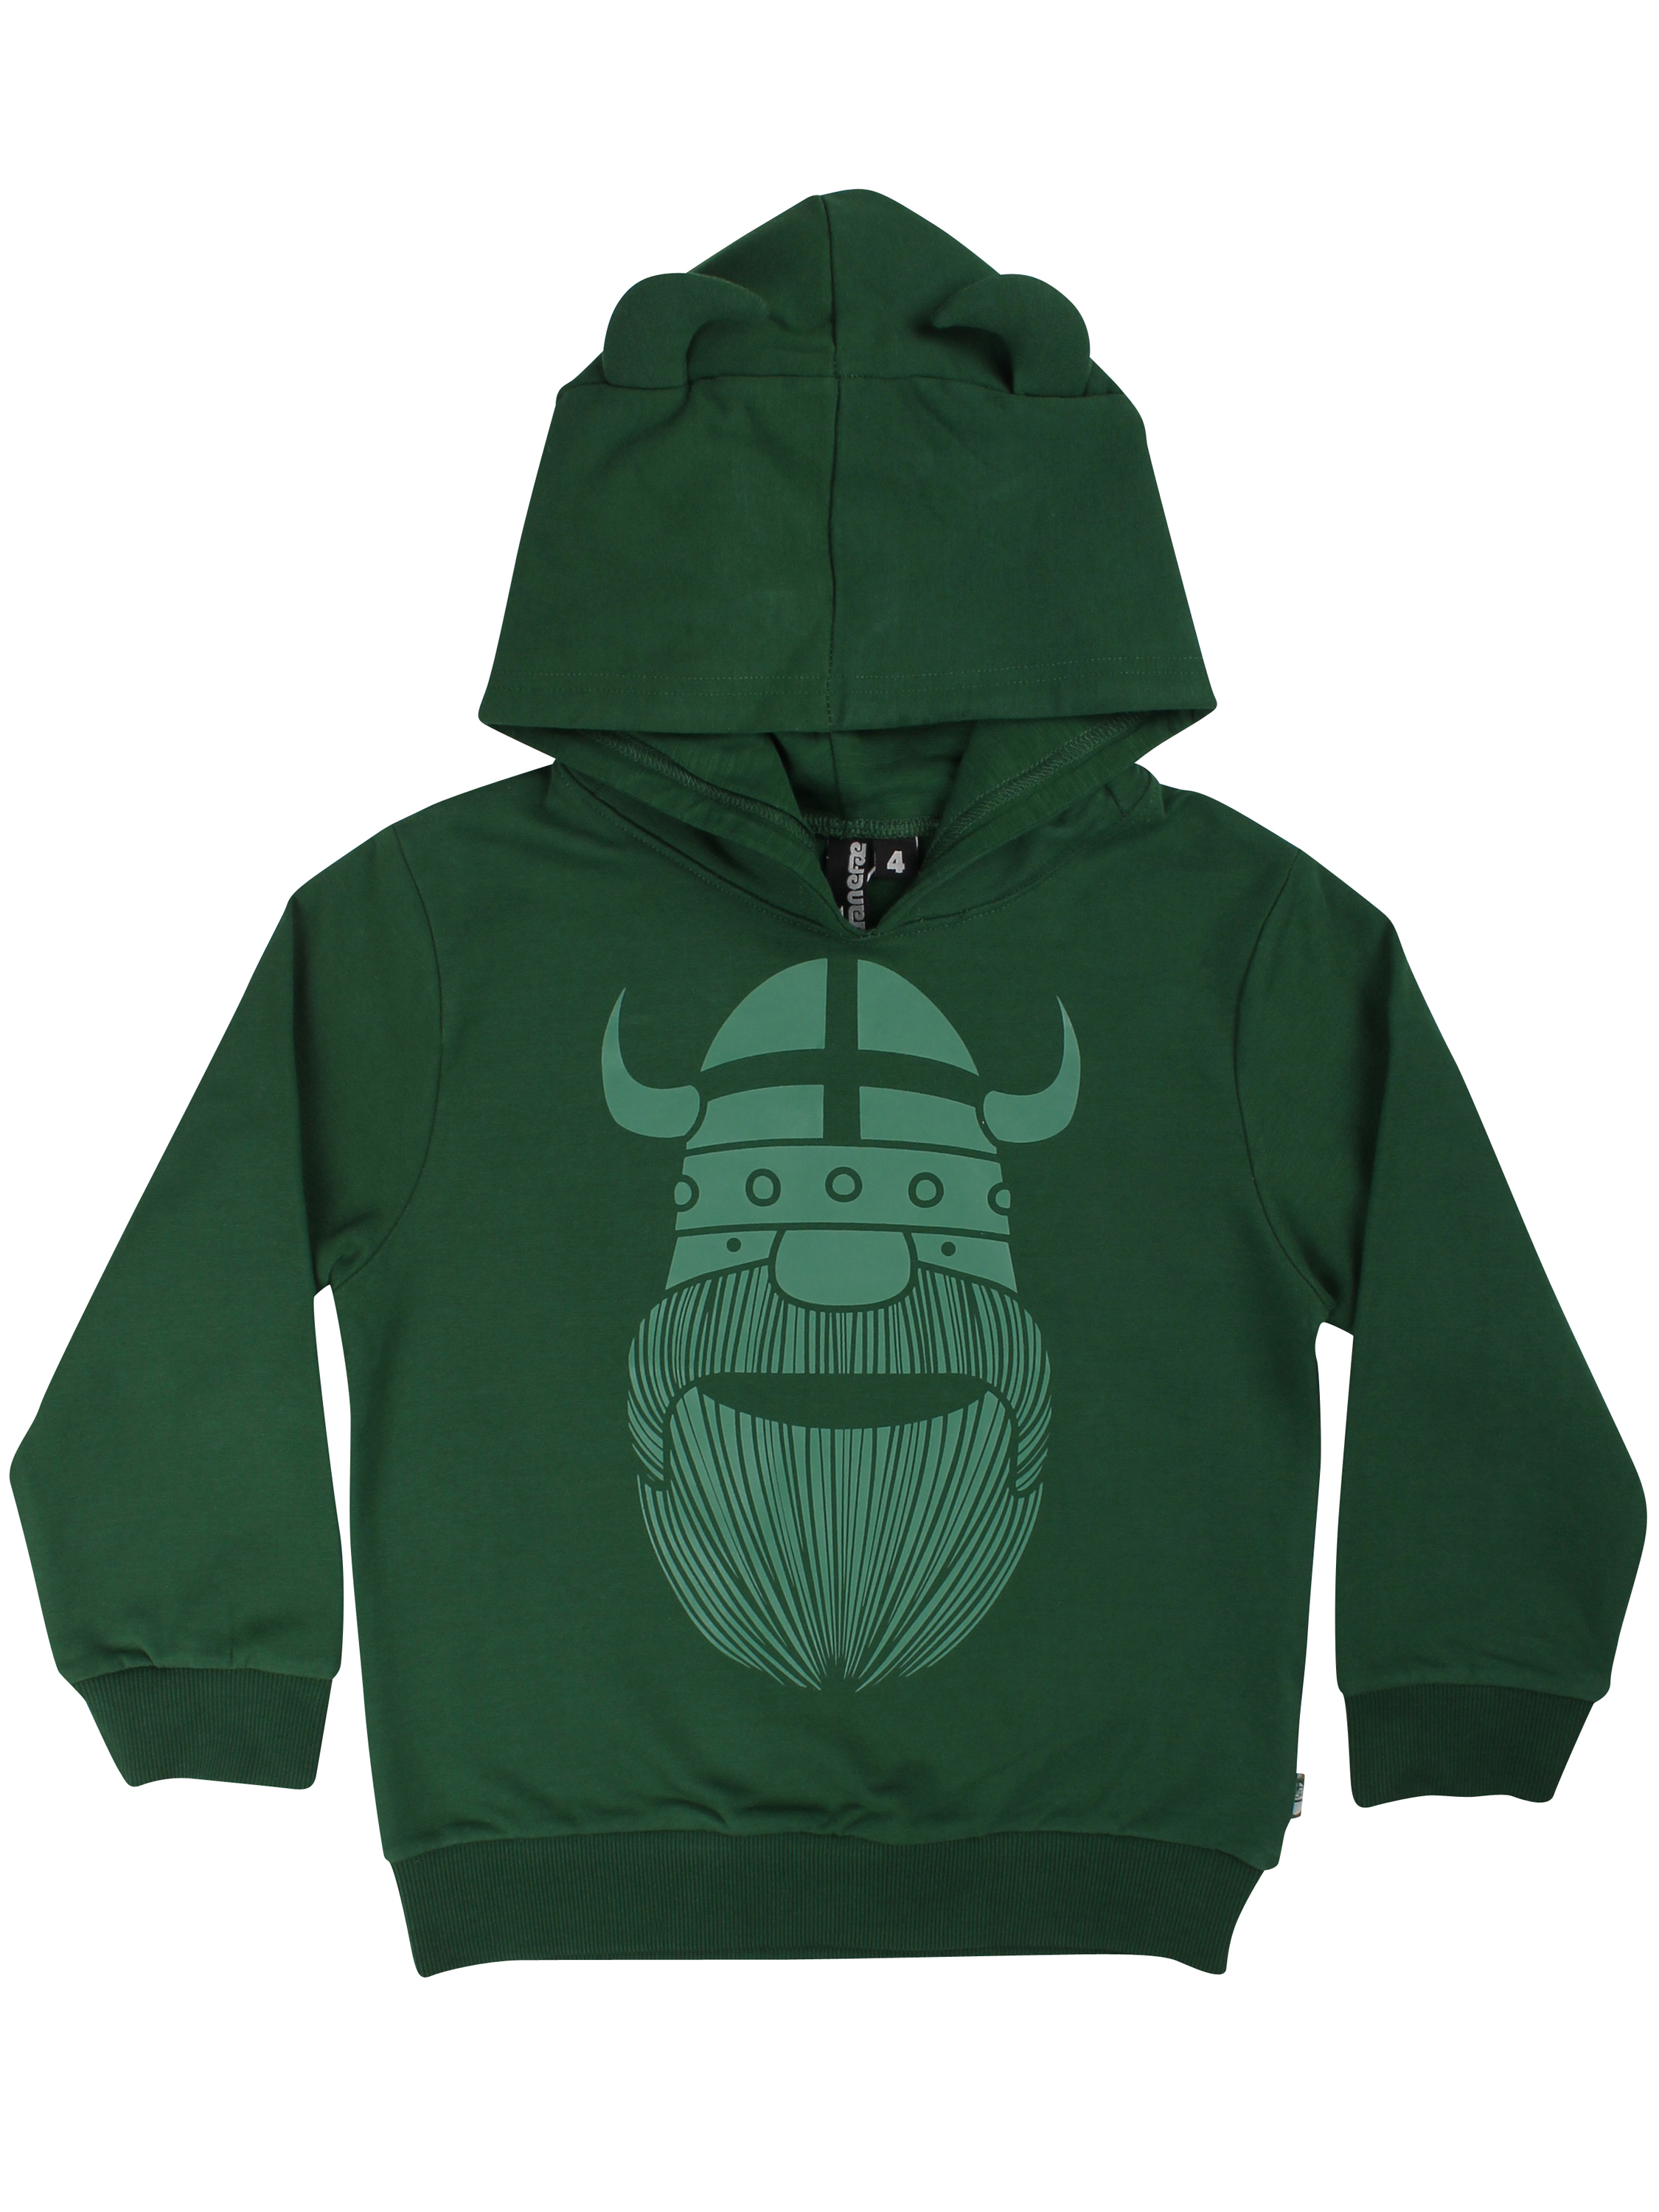 Danefae Boy Kapuzenpullover Warrior Dark Army ERIK